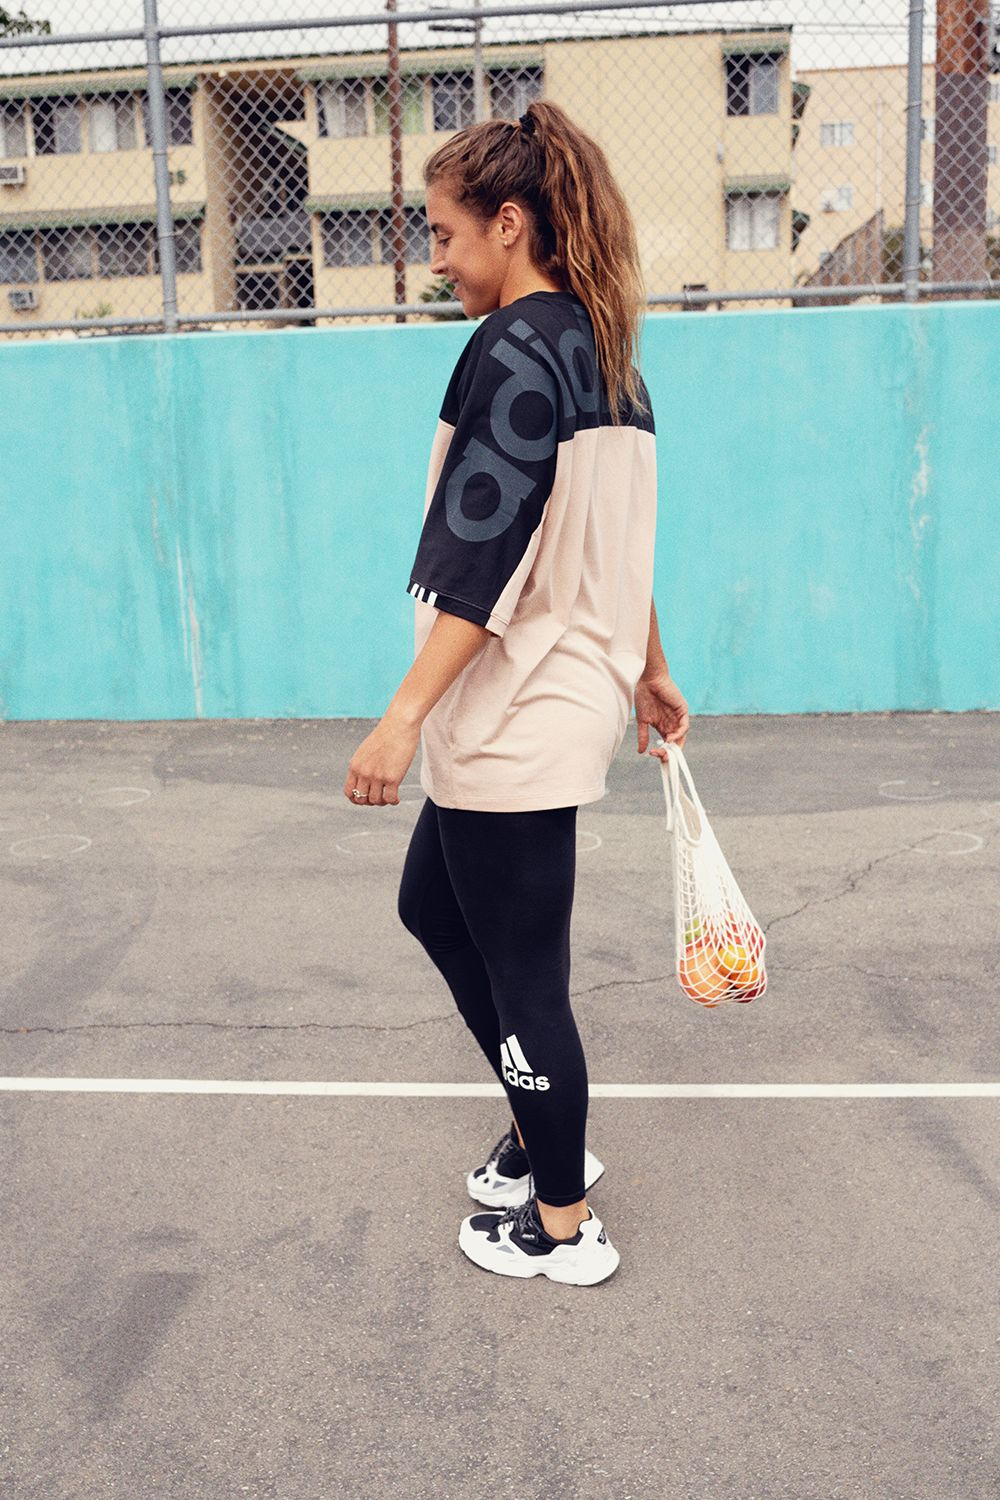 Canadá Quedar asombrado escalera mecánica  adidas athleisure style. Powerfully Versatile. A collection that takes you  from workout to night out, and an… | Adidas outfit women, Adidas women,  Clothes for women